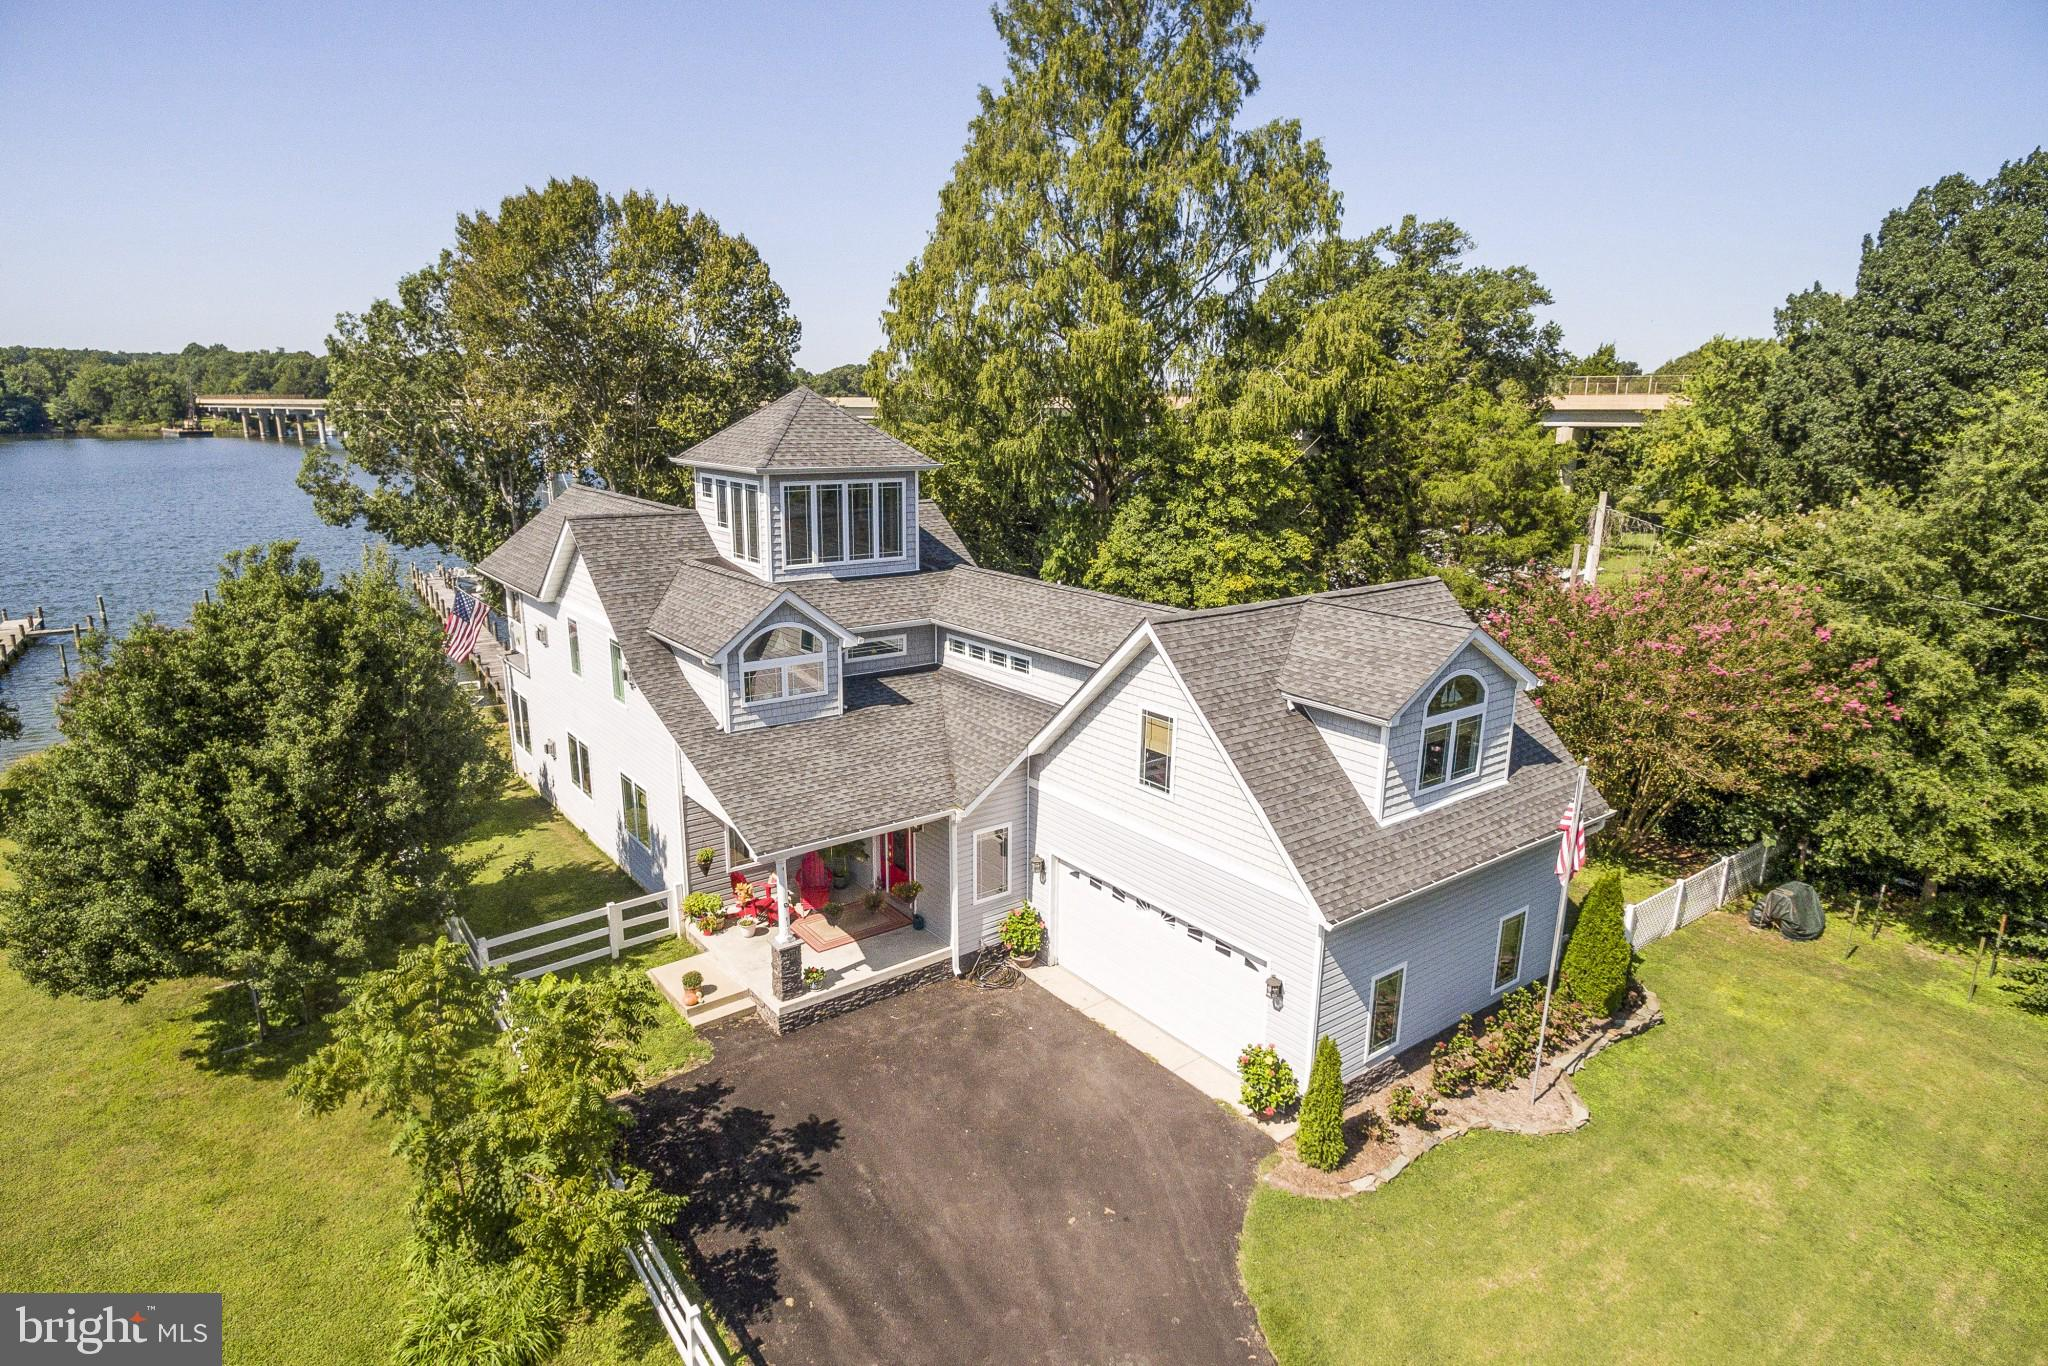 Waterfront luxury home has all the bells and whistles you are looking for both inside and out! Enjoy